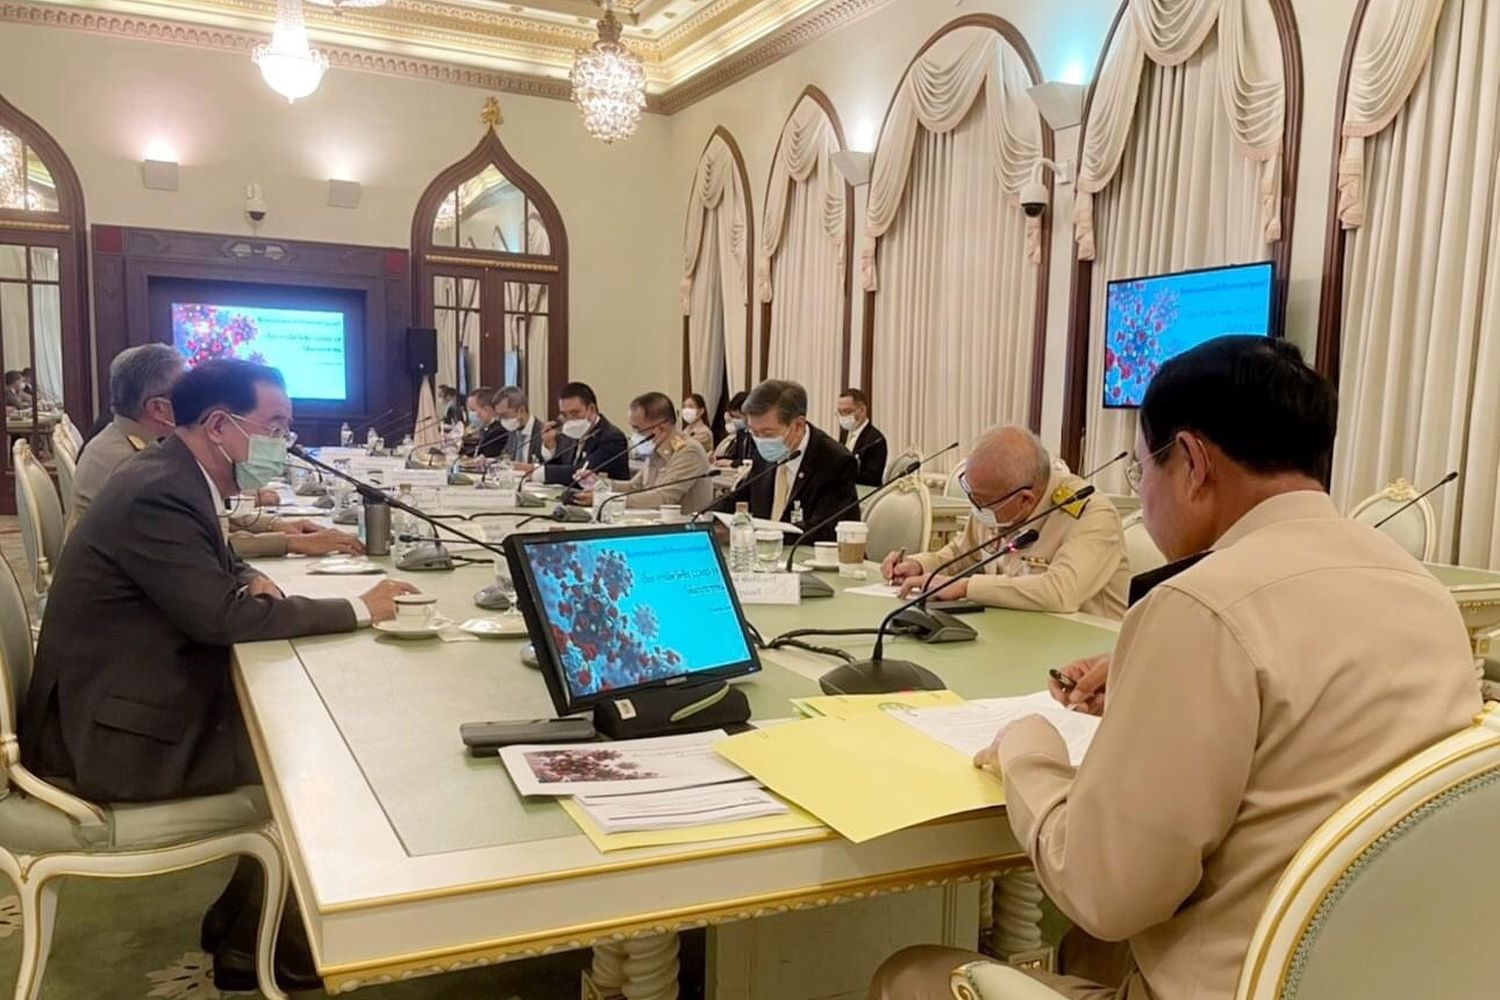 Prime Minister Prayut Chan-o-cha (right) chairs a meeting on Covid-19 vaccine procurement at Government House on Monday. Criticism followed that he failed to wear a mask and the photo was removed from Facebook. (Government House photo)